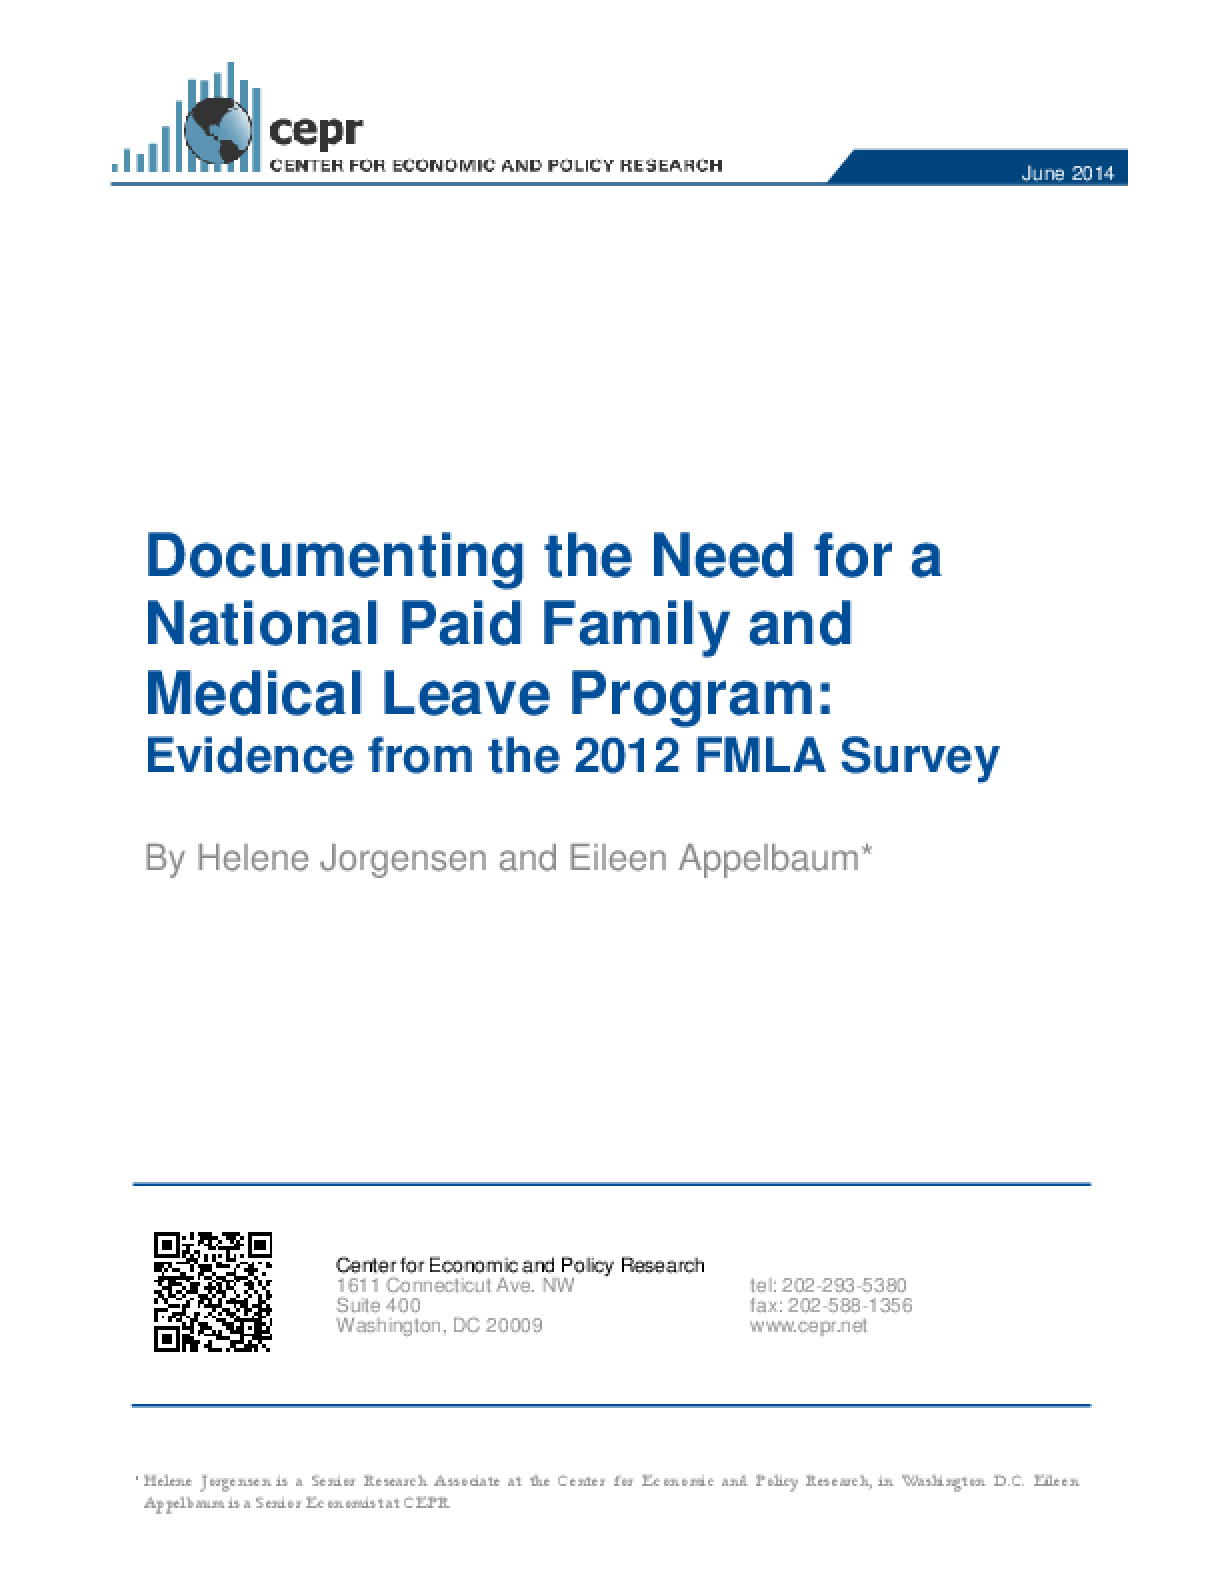 Documenting the Need for a National Paid Family and Medical Leave Program: Evidence from the 2012 FMLA Survey